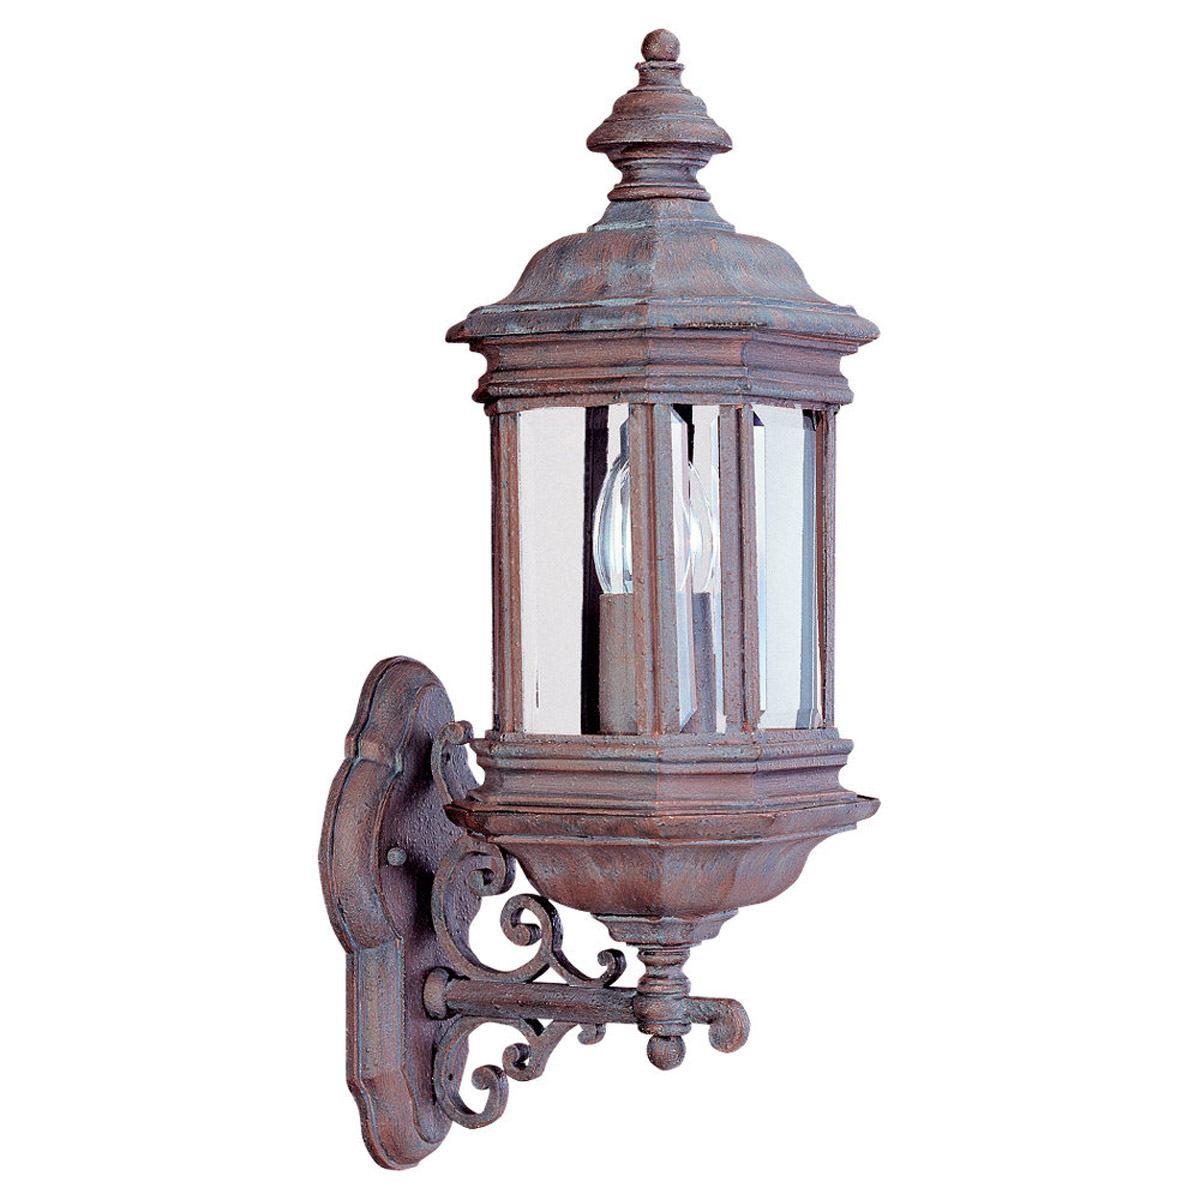 Sea Gull Lighting Hill Gate 2 Light Outdoor Wall Lantern in Textured Rust Patina 8838-08 photo